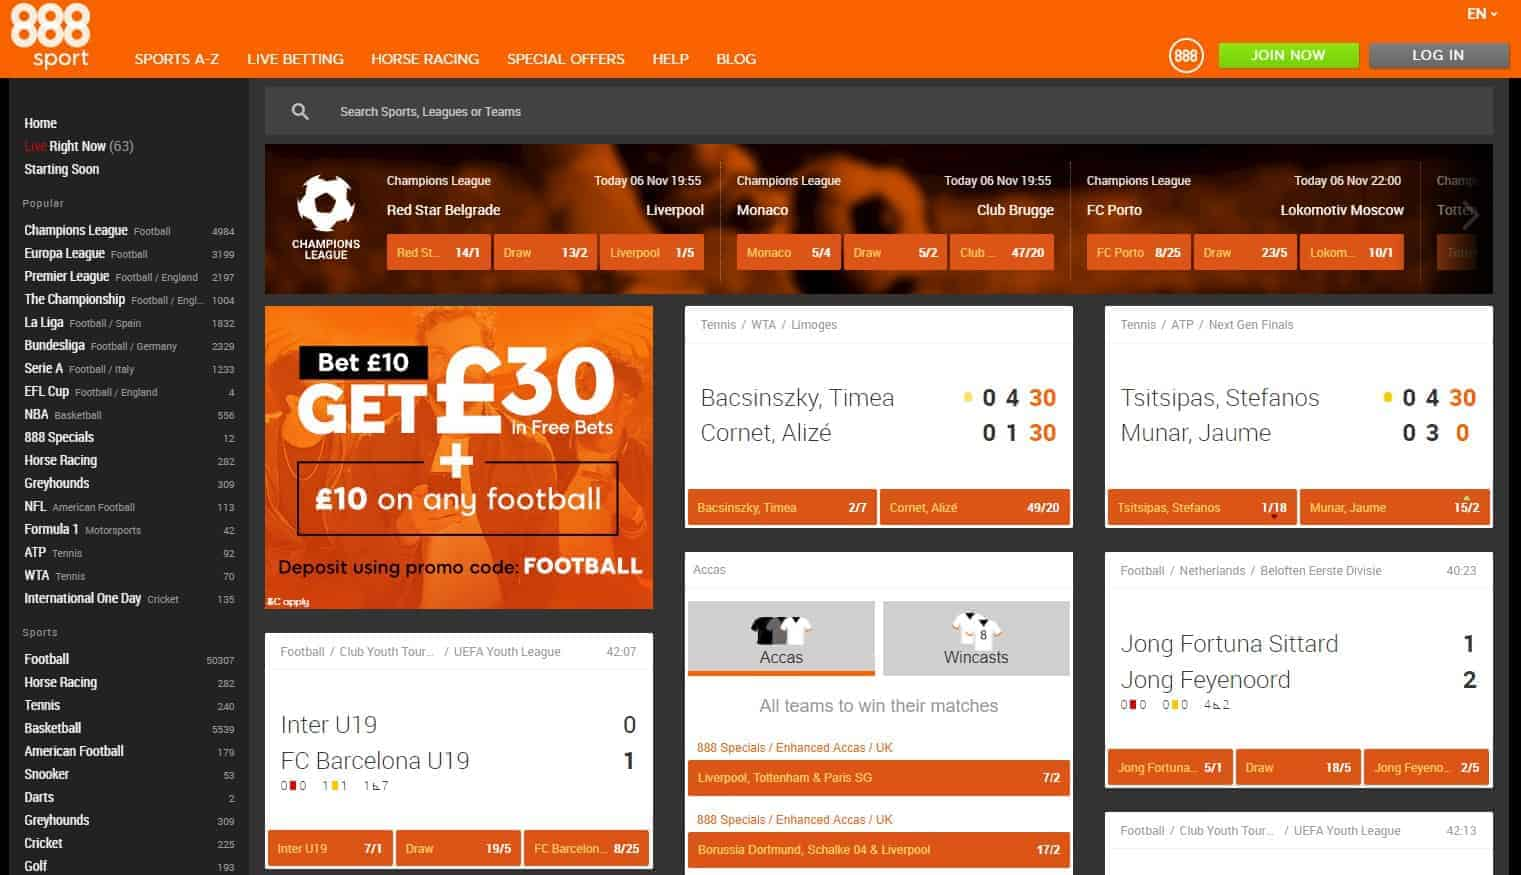 888sport Online Betting Homepage